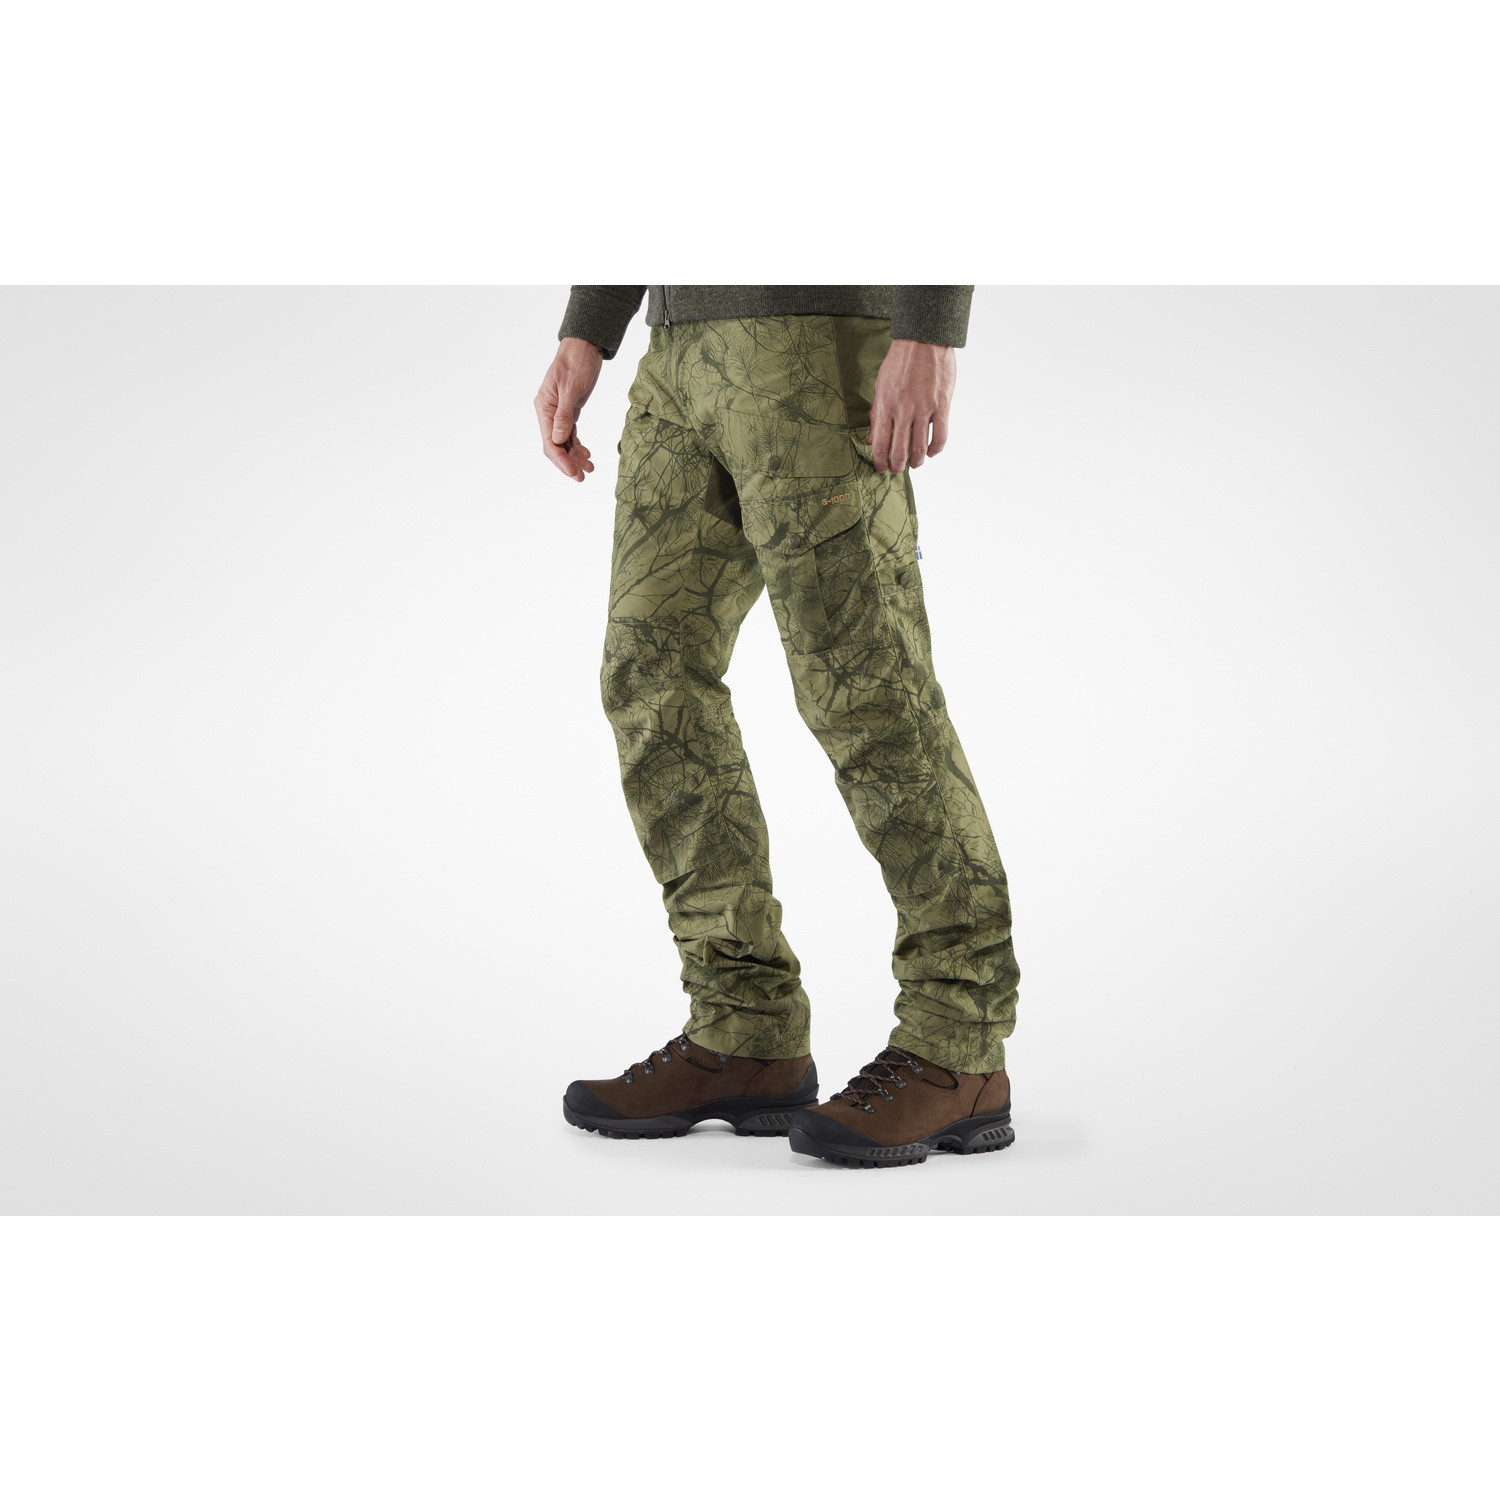 Fjällräven Barents Pro Hunting Trousers M Green Camo-Deep Forest-7